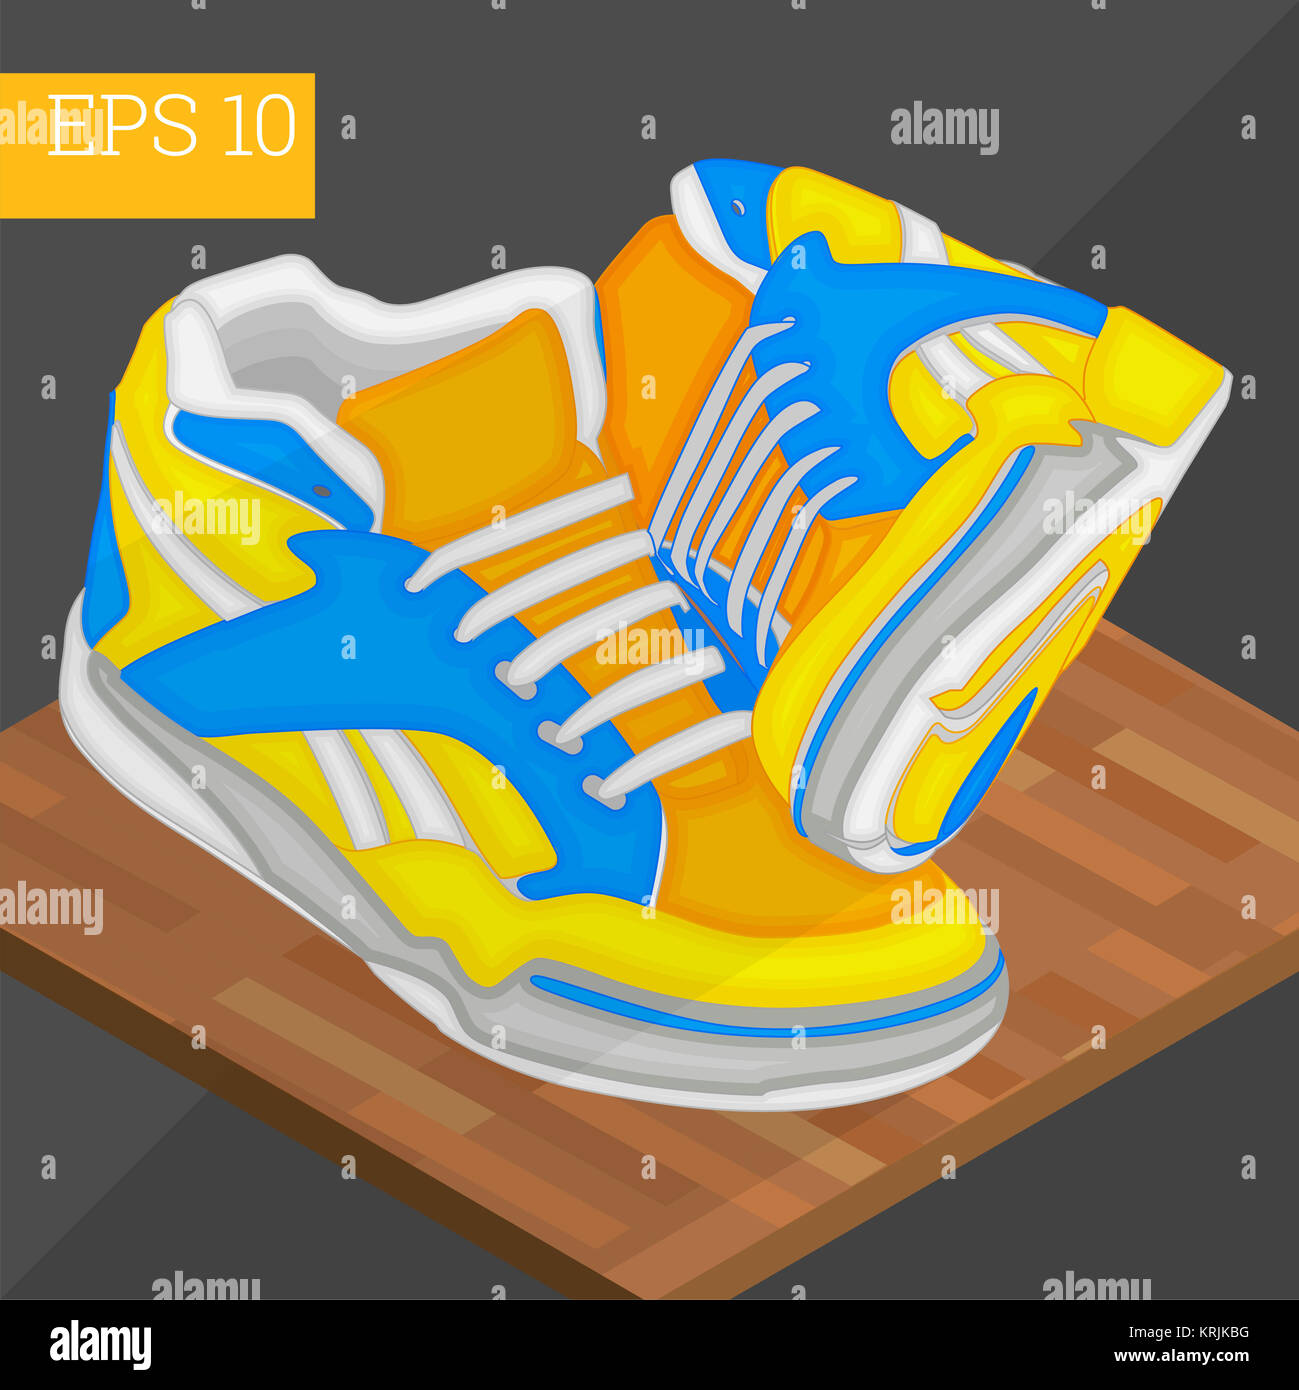 Basketball Colored Sport Illustration Imágenes De Stock & Basketball ...